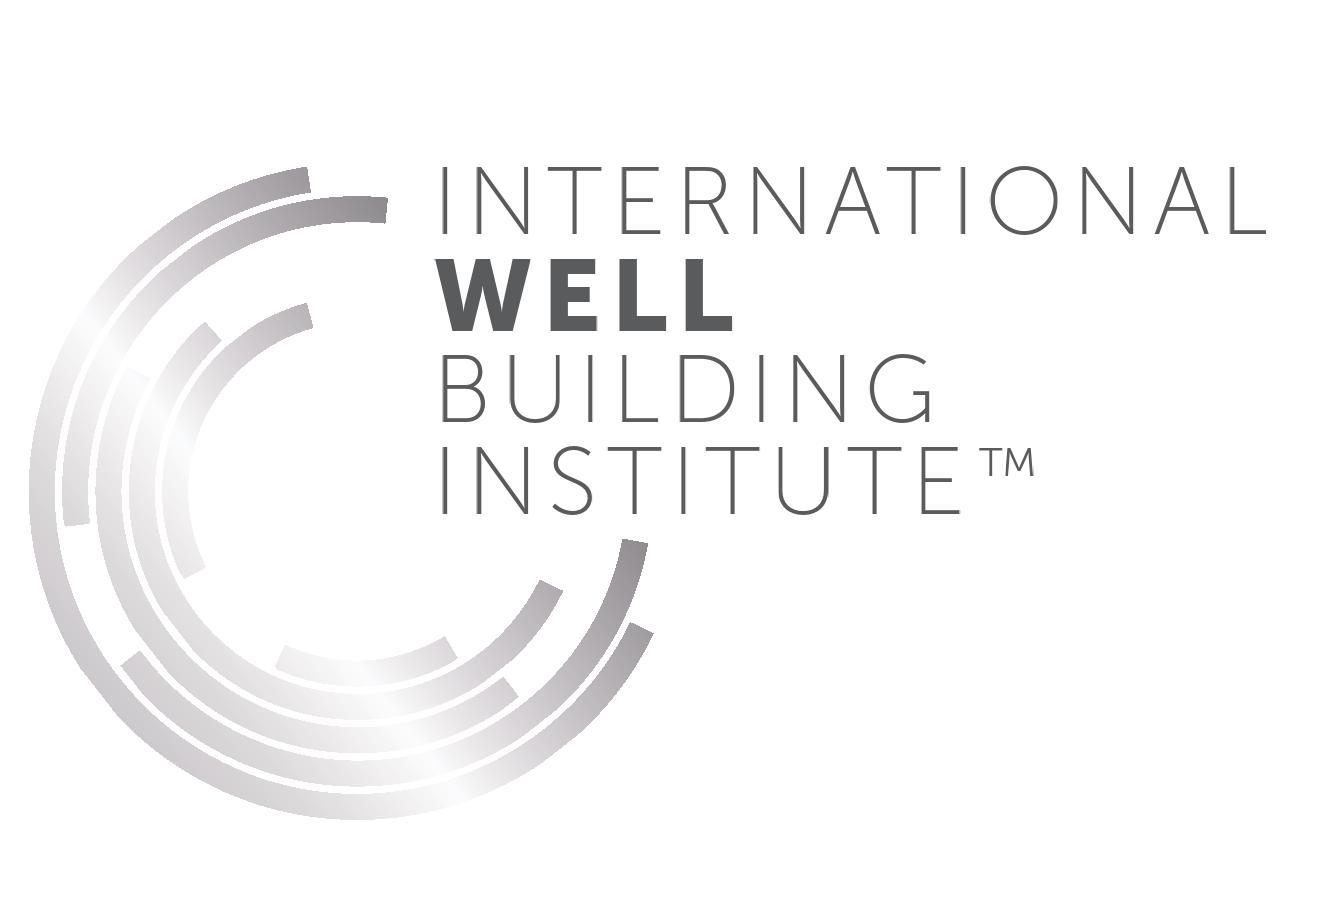 International Well Building Institute™ and Bre Collaborate